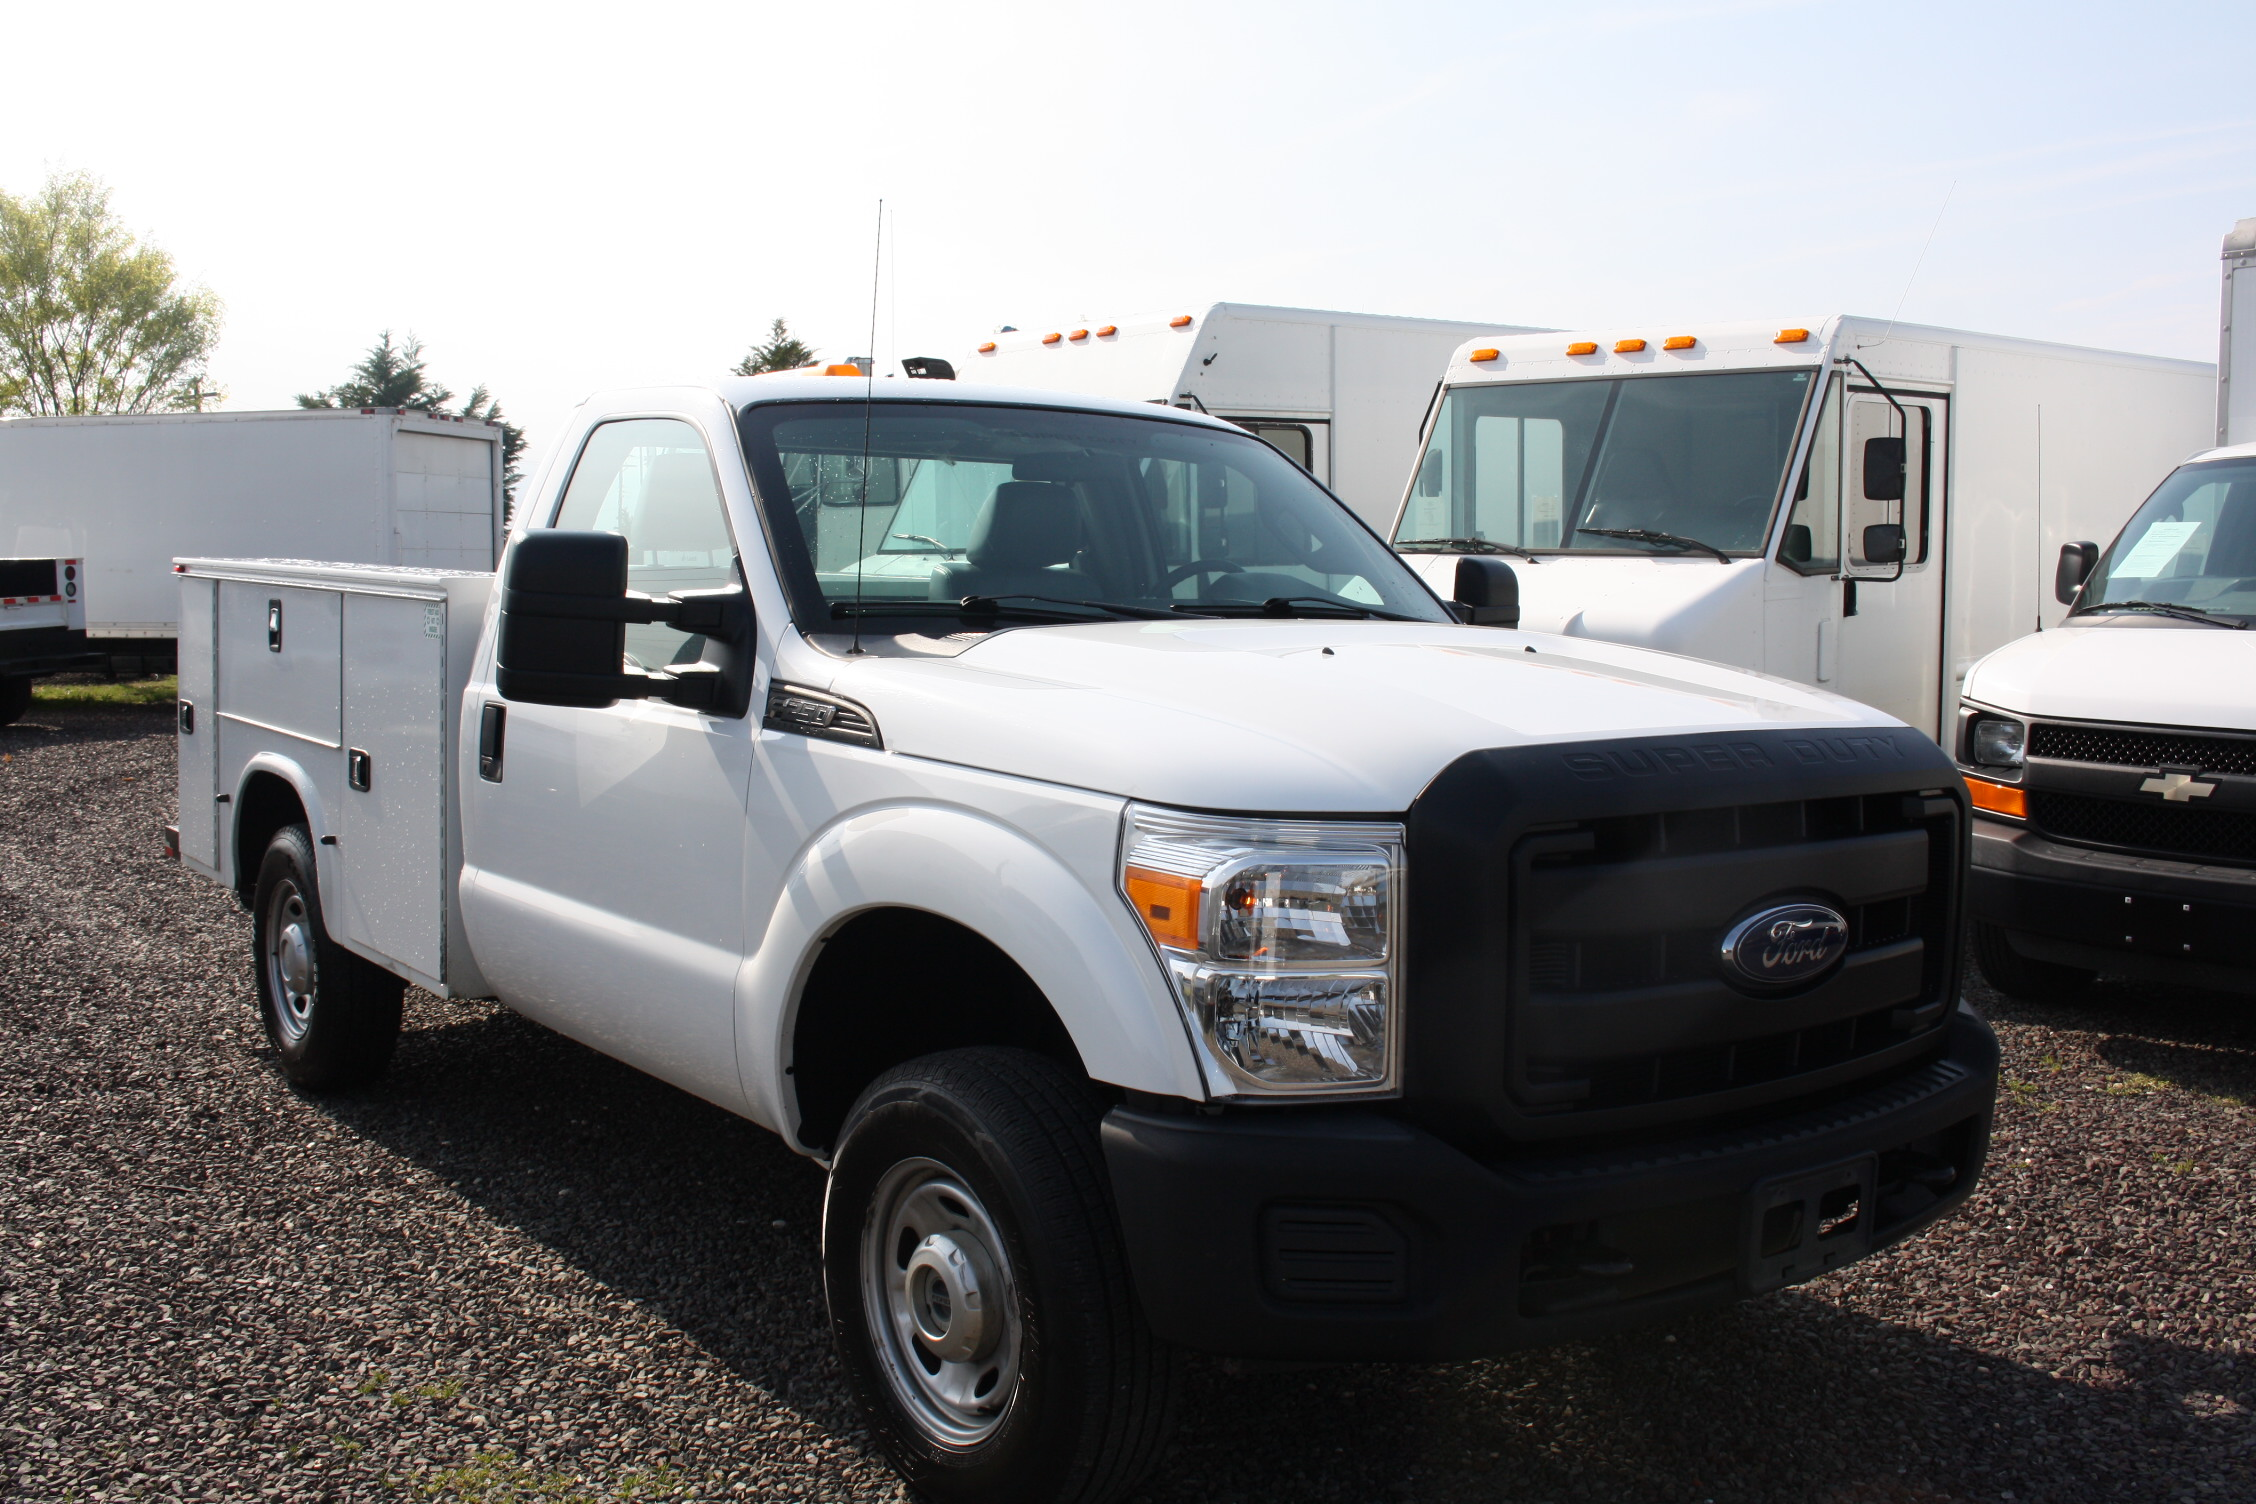 IMG 3580 - 2015 FORD F250 OPEN UTILITY TRUCK